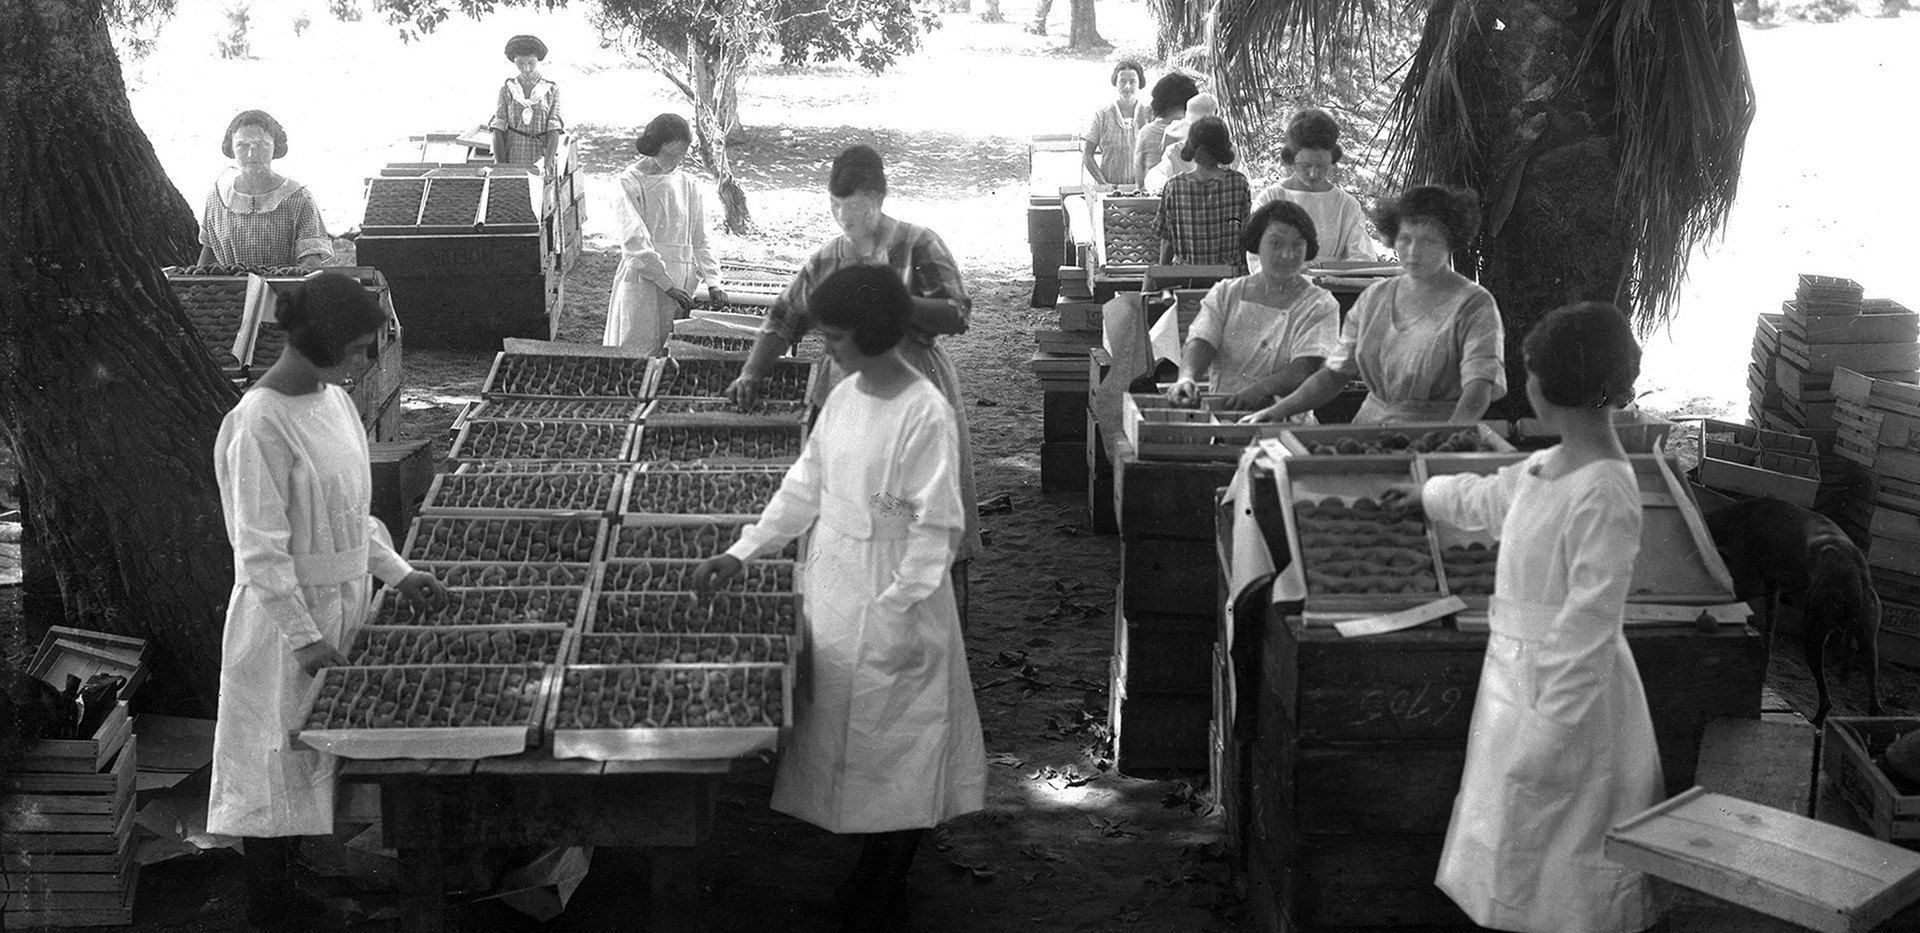 The fig industry in Fresno County was in its infancy in the early 1900s and soon became a vital part of the local economy. To help make ends meet, Italian American women often took jobs canning peaches and packing grapes and figs in brutally hot conditions.